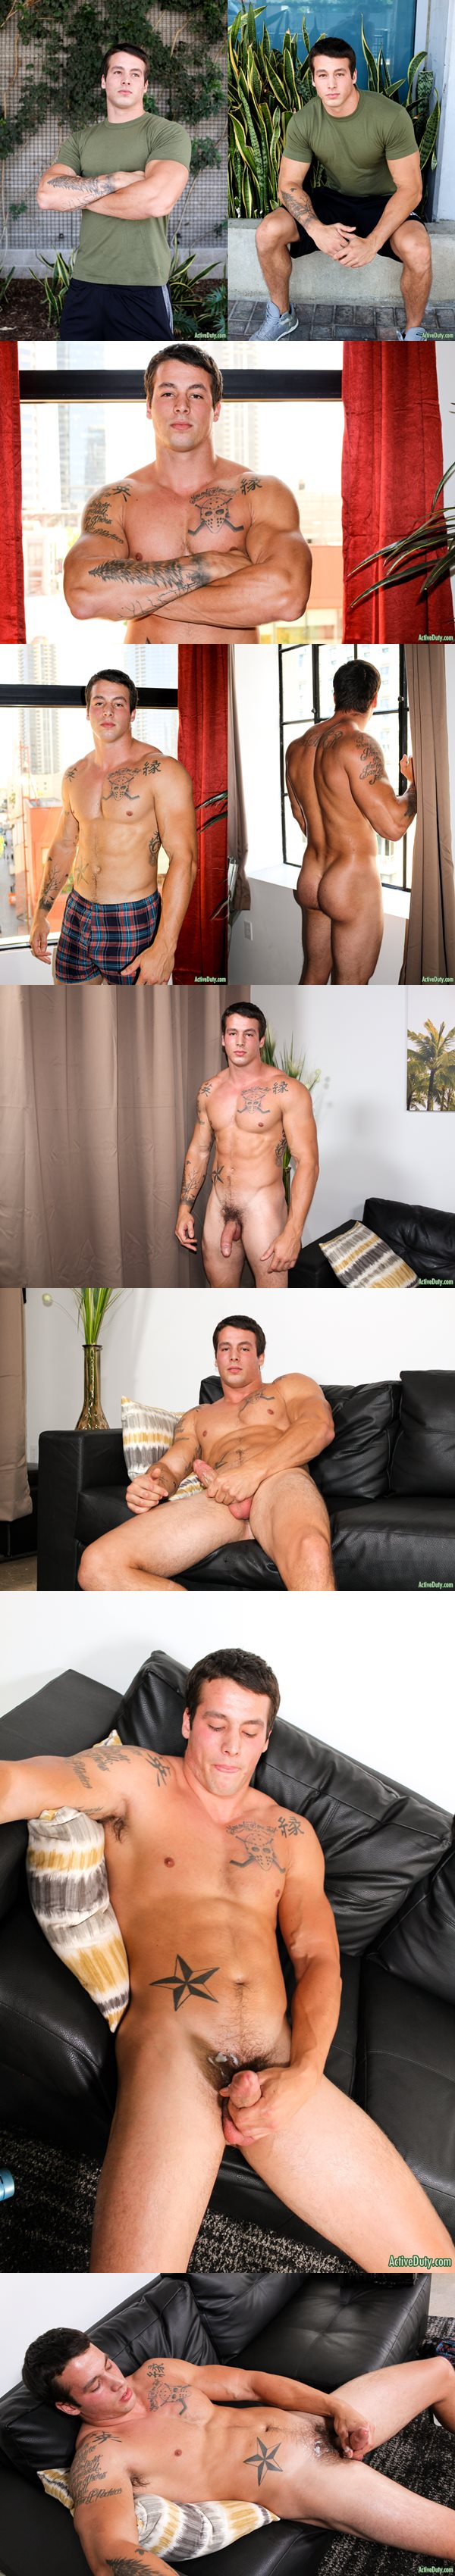 Handsome tattooed military jock Ty jerks off at Activeduty